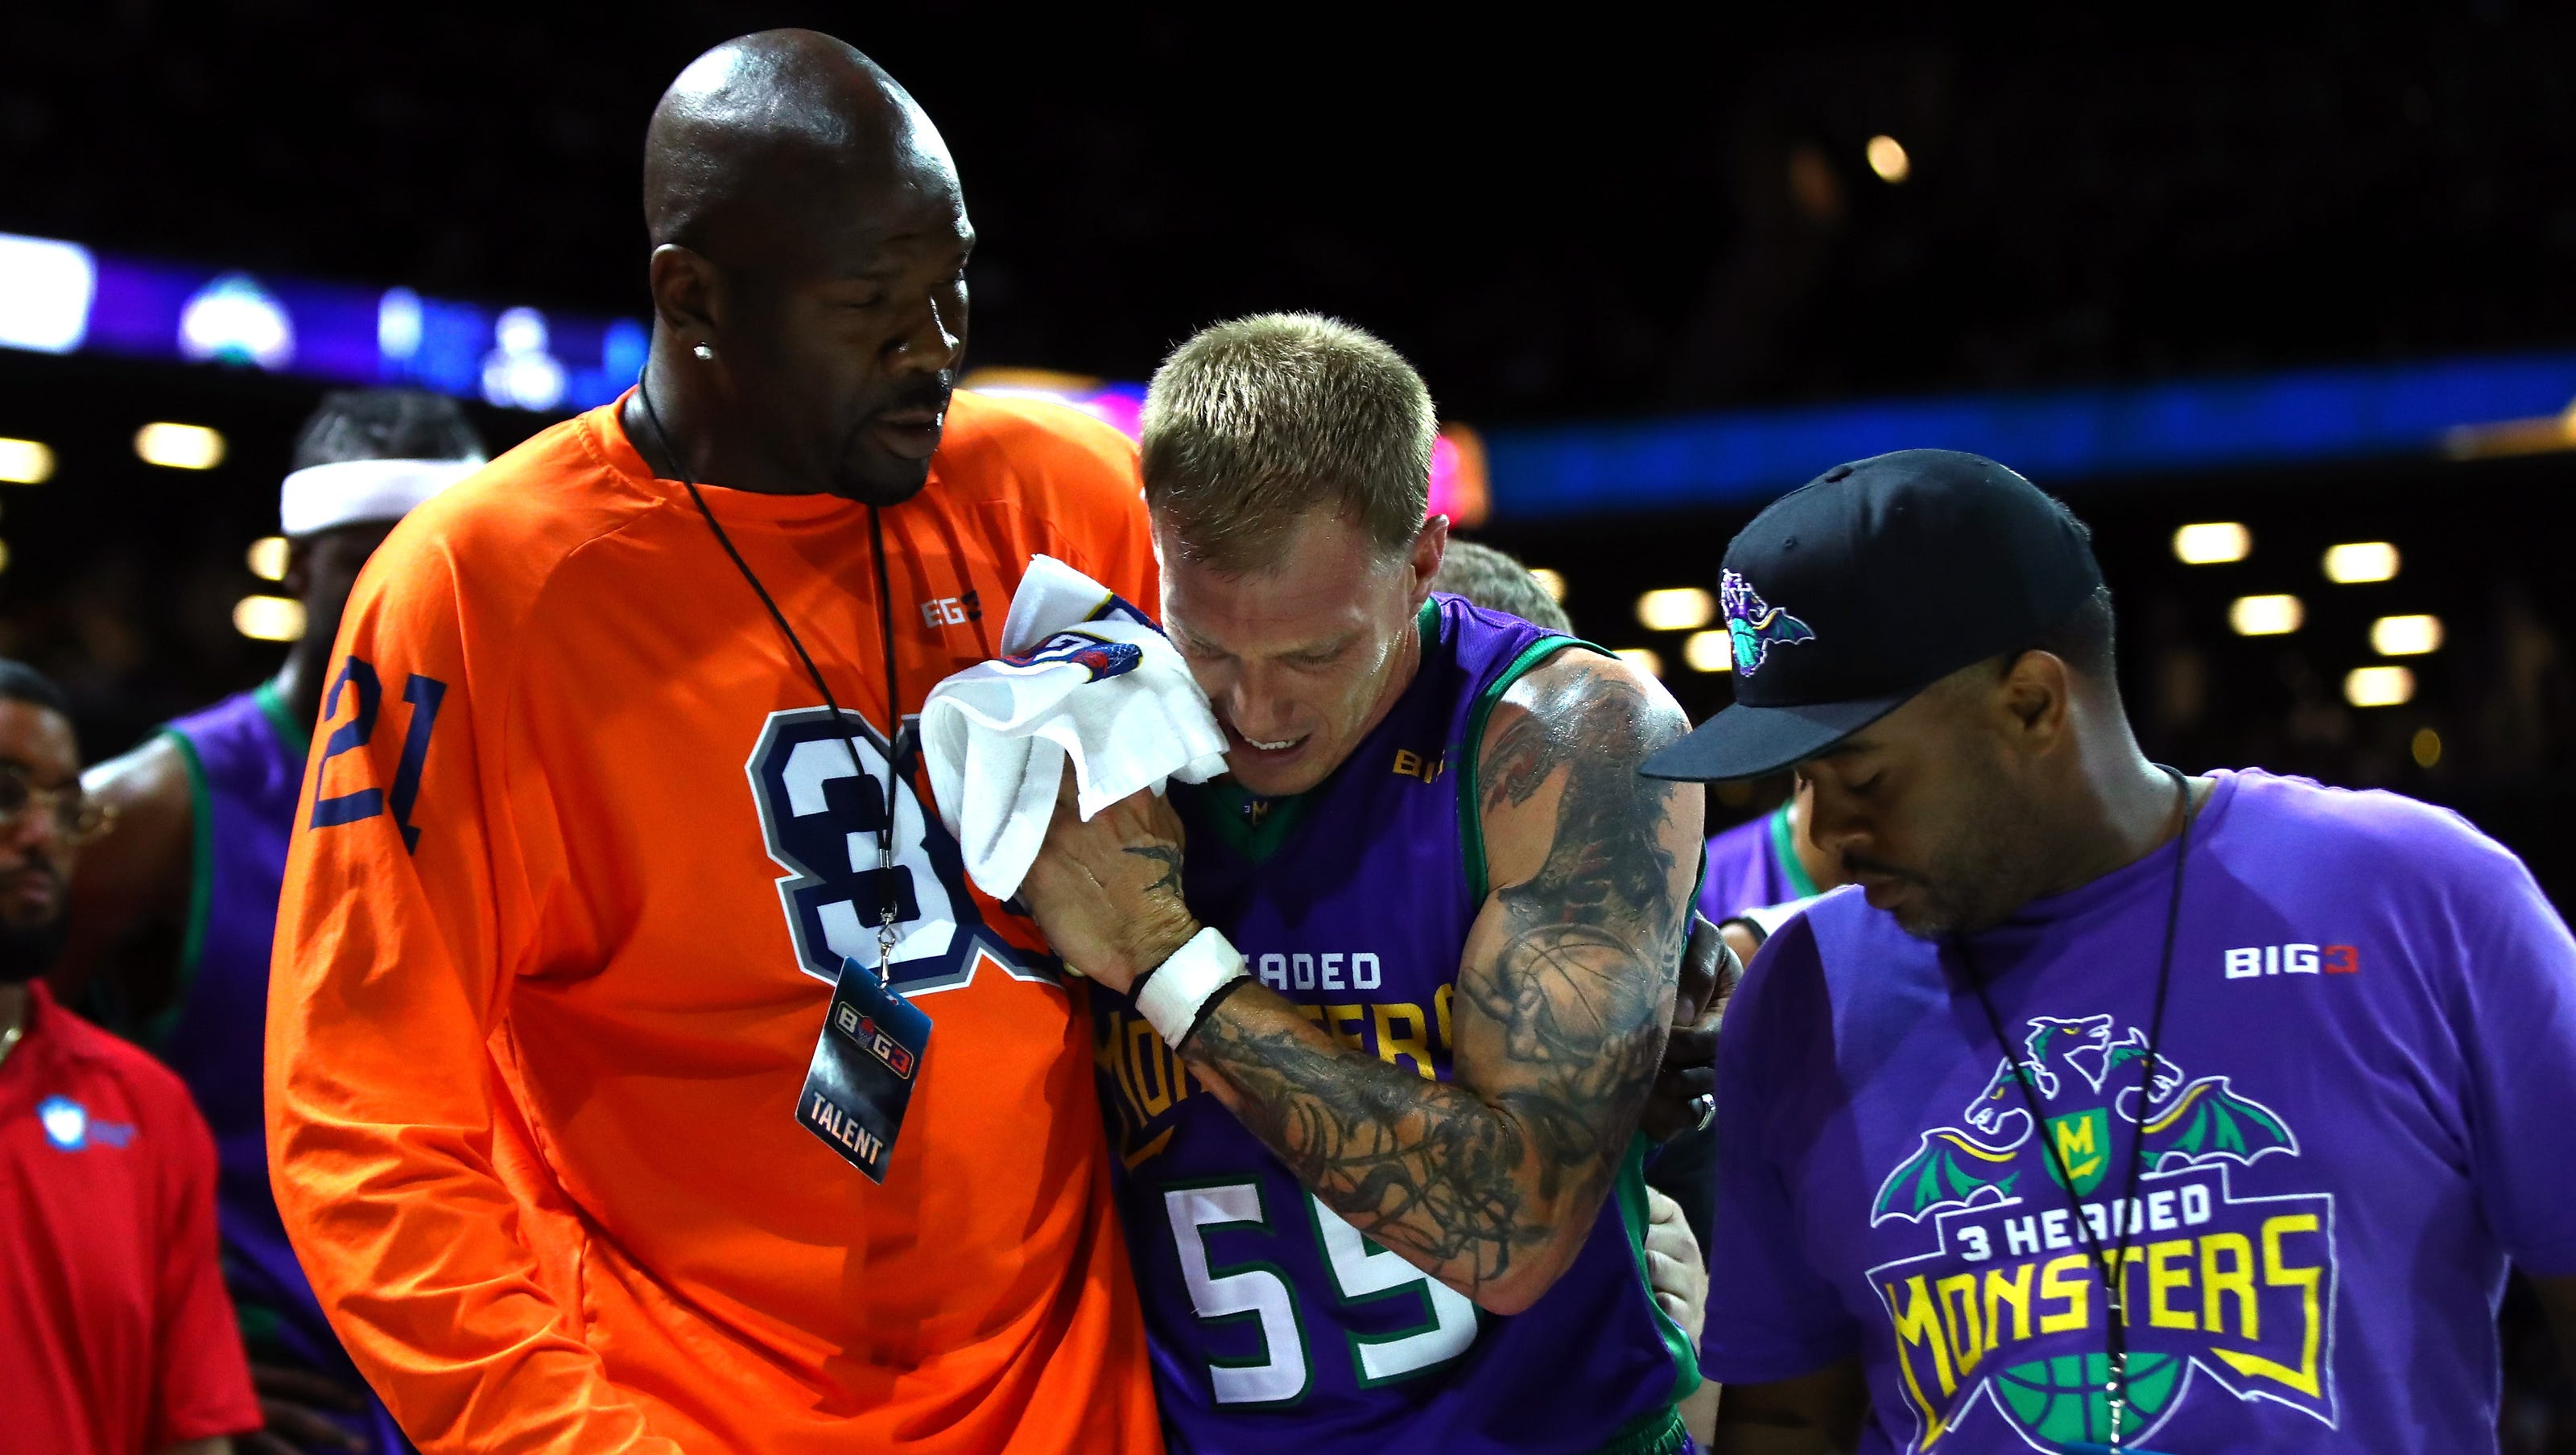 jason williams to miss rest of big3 season after suffering